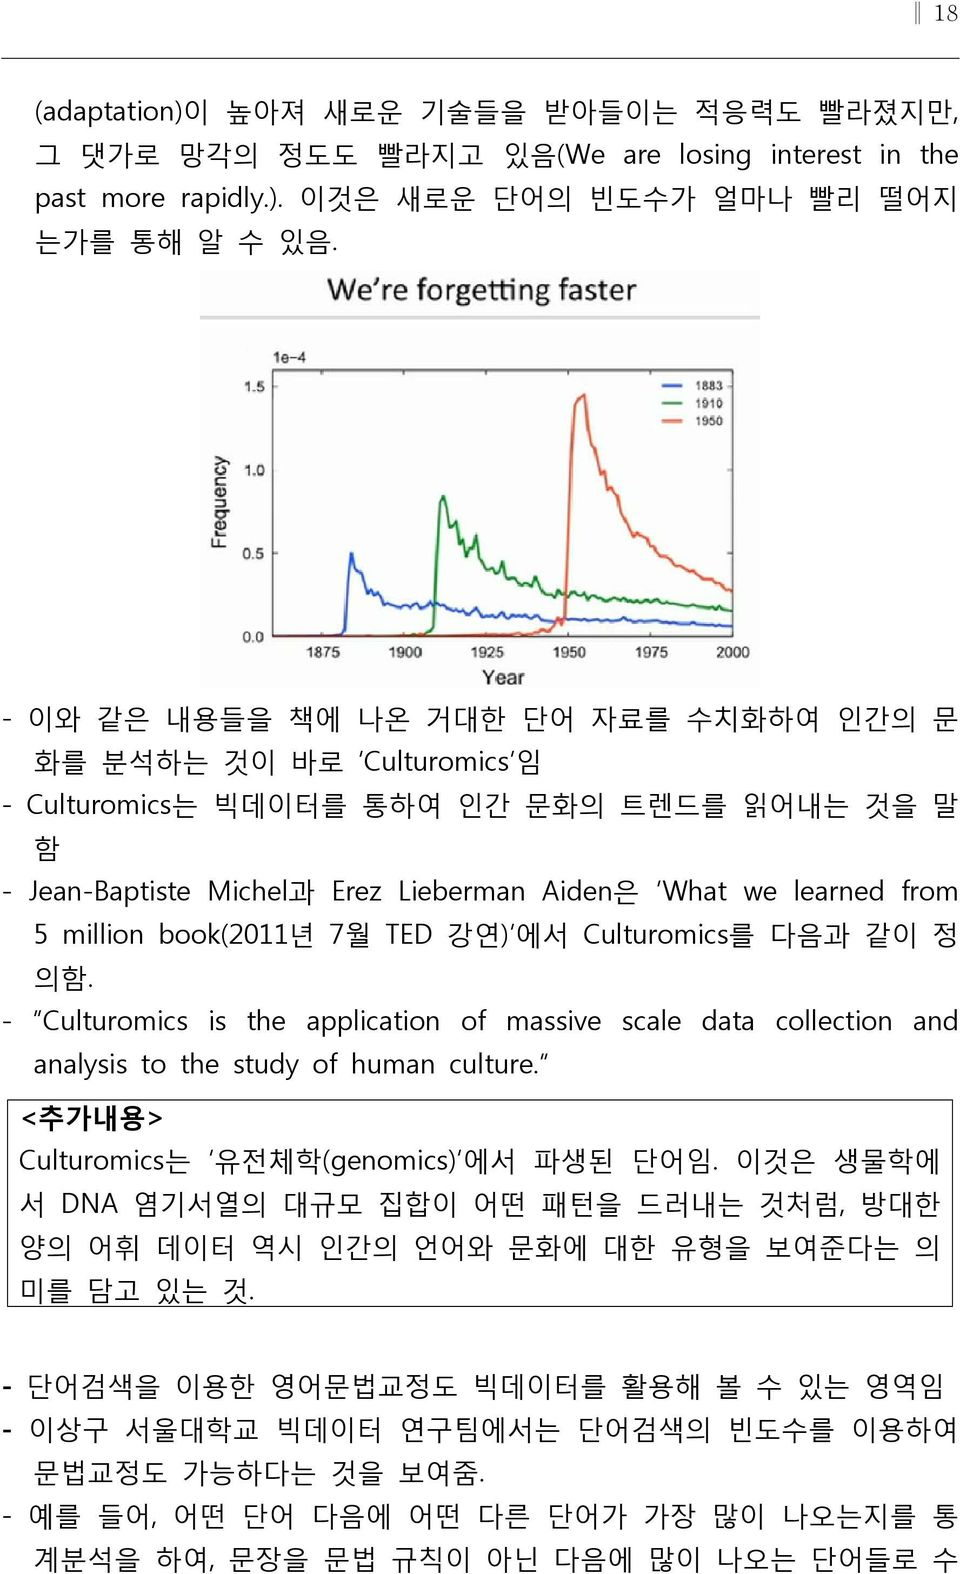 book(2011년 7월 TED 강연) 에서 Culturomics를 다음과 같이 정 의함. - Culturomics is the application of massive scale data collection and analysis to the study of human culture.